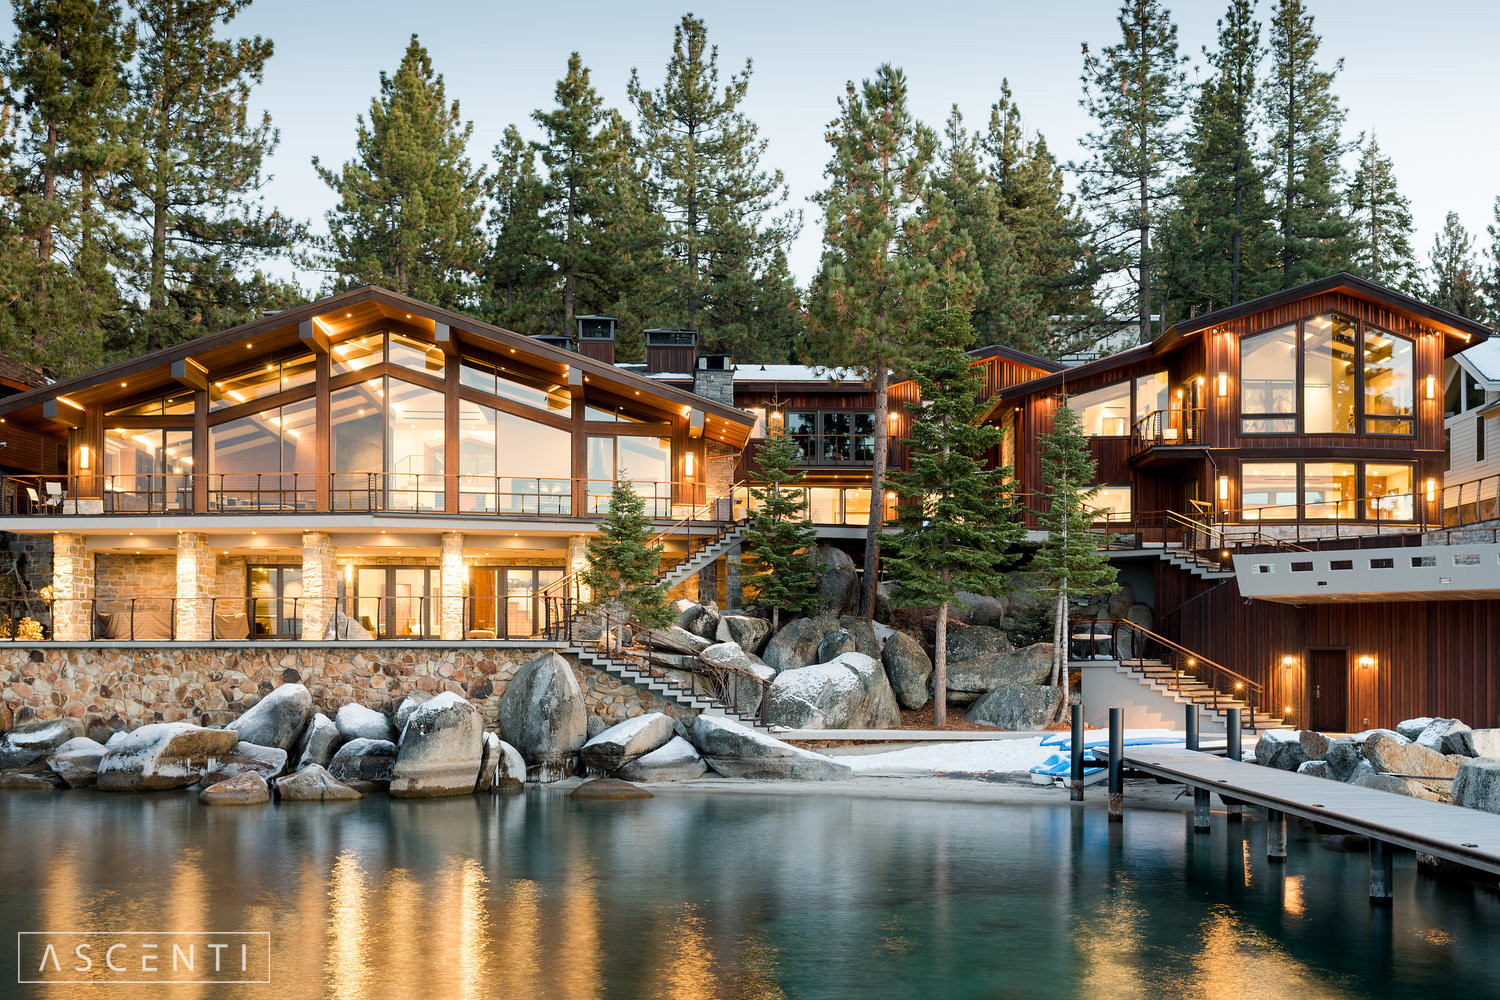 Lake Tahoe Residence ASCENTI LIGHITNG-24